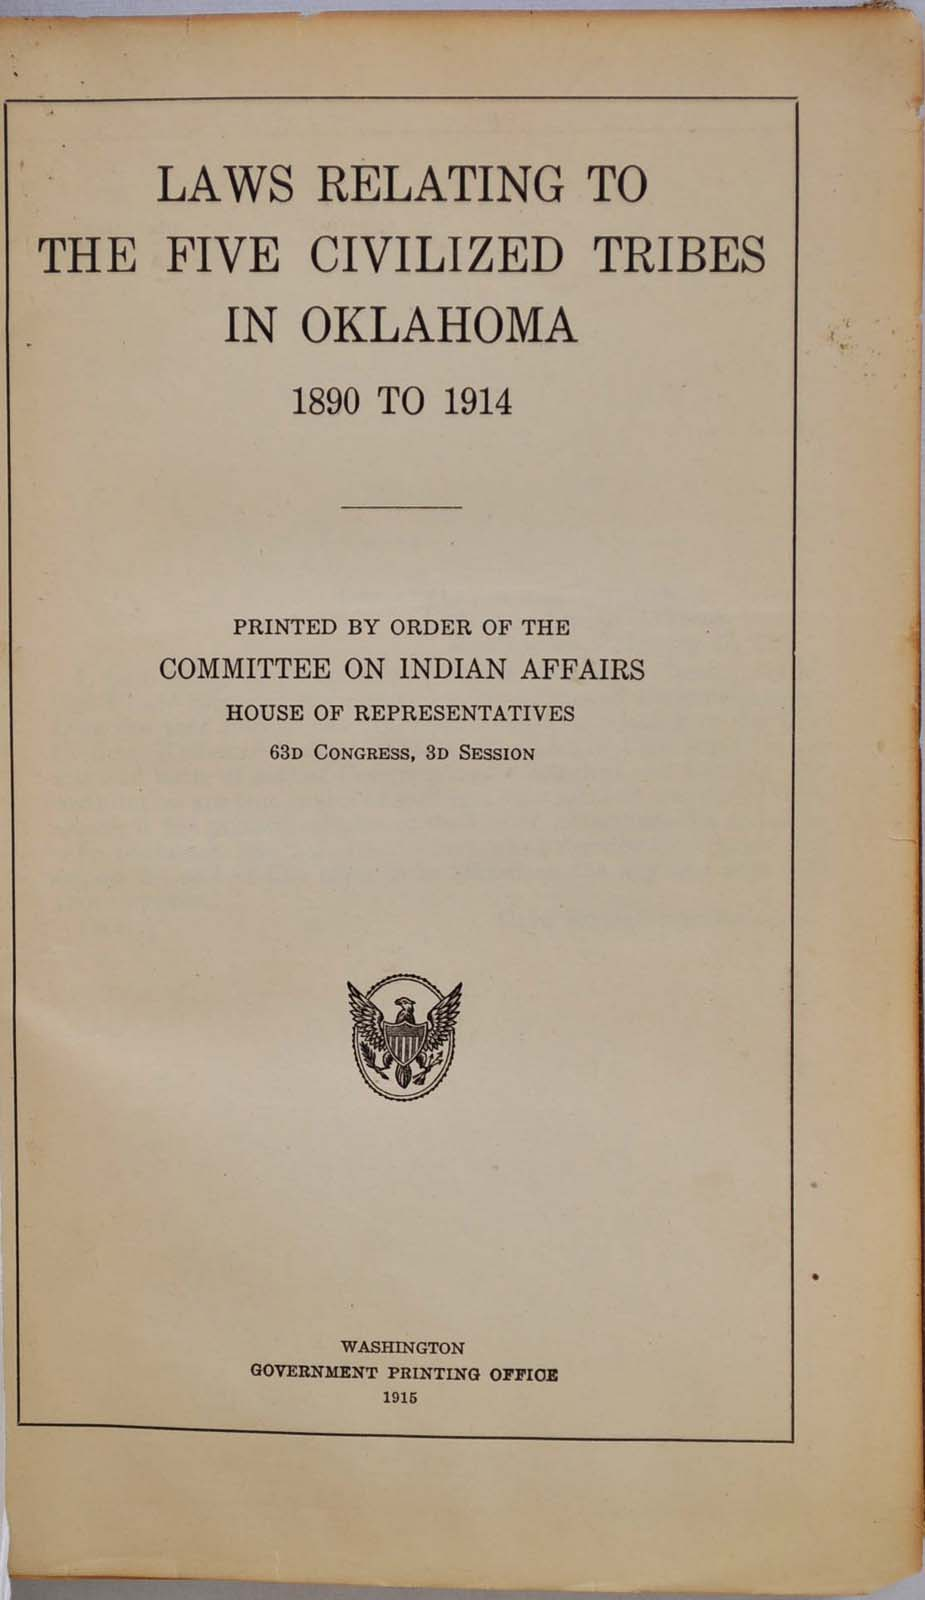 Laws Relating To The Five Civilized Tribes In Oklahoma  Printed By Order Of The Committee On Indian Affairs House Of Representatives 63d